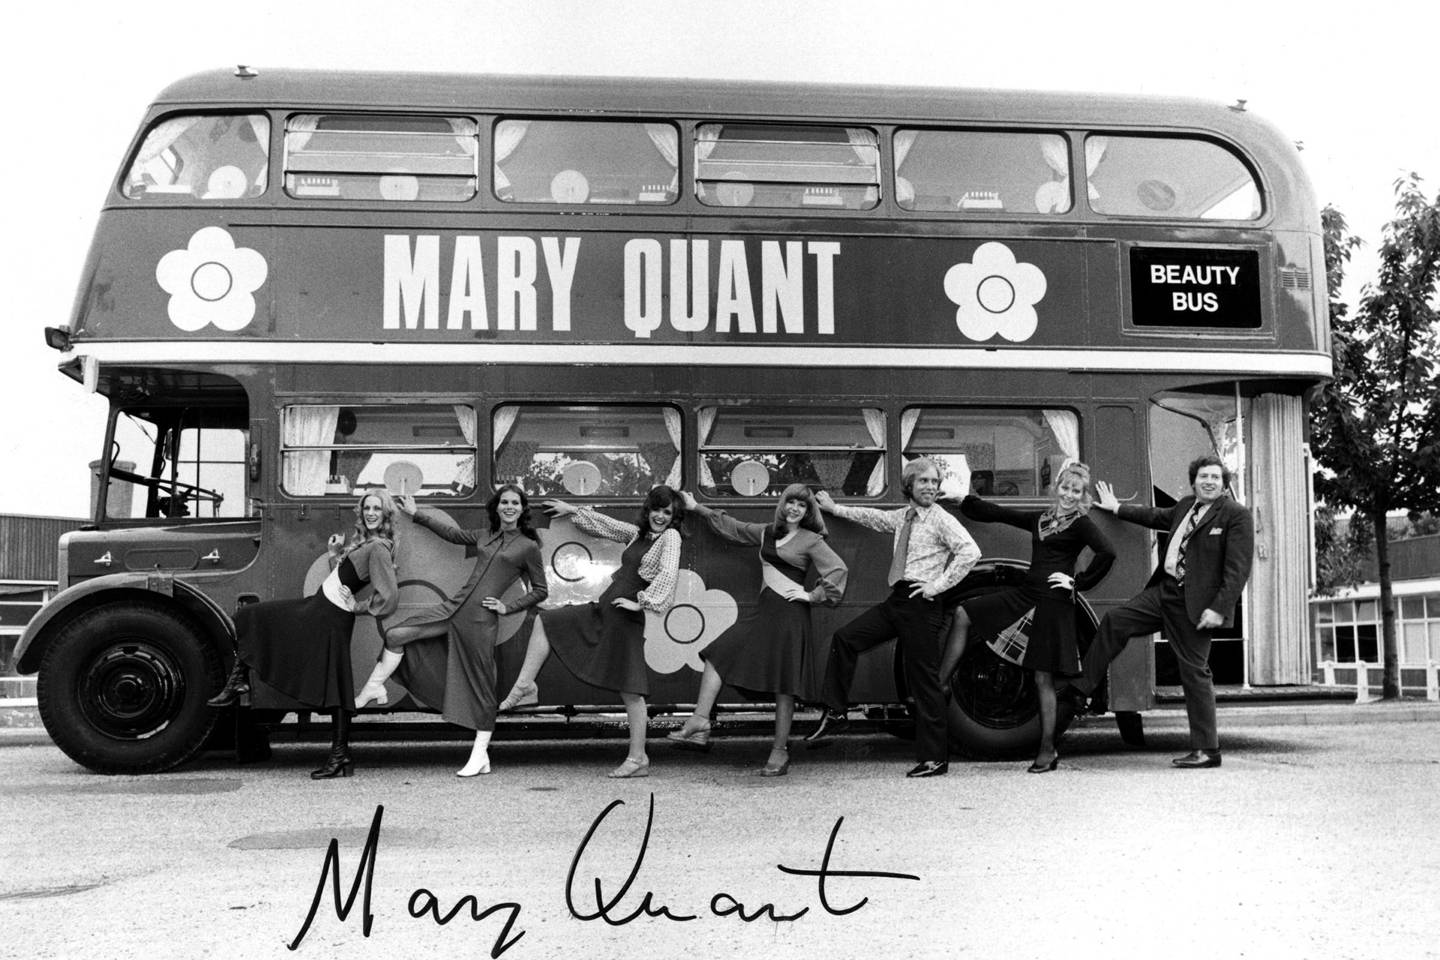 mary quant bus credit-ALAMY